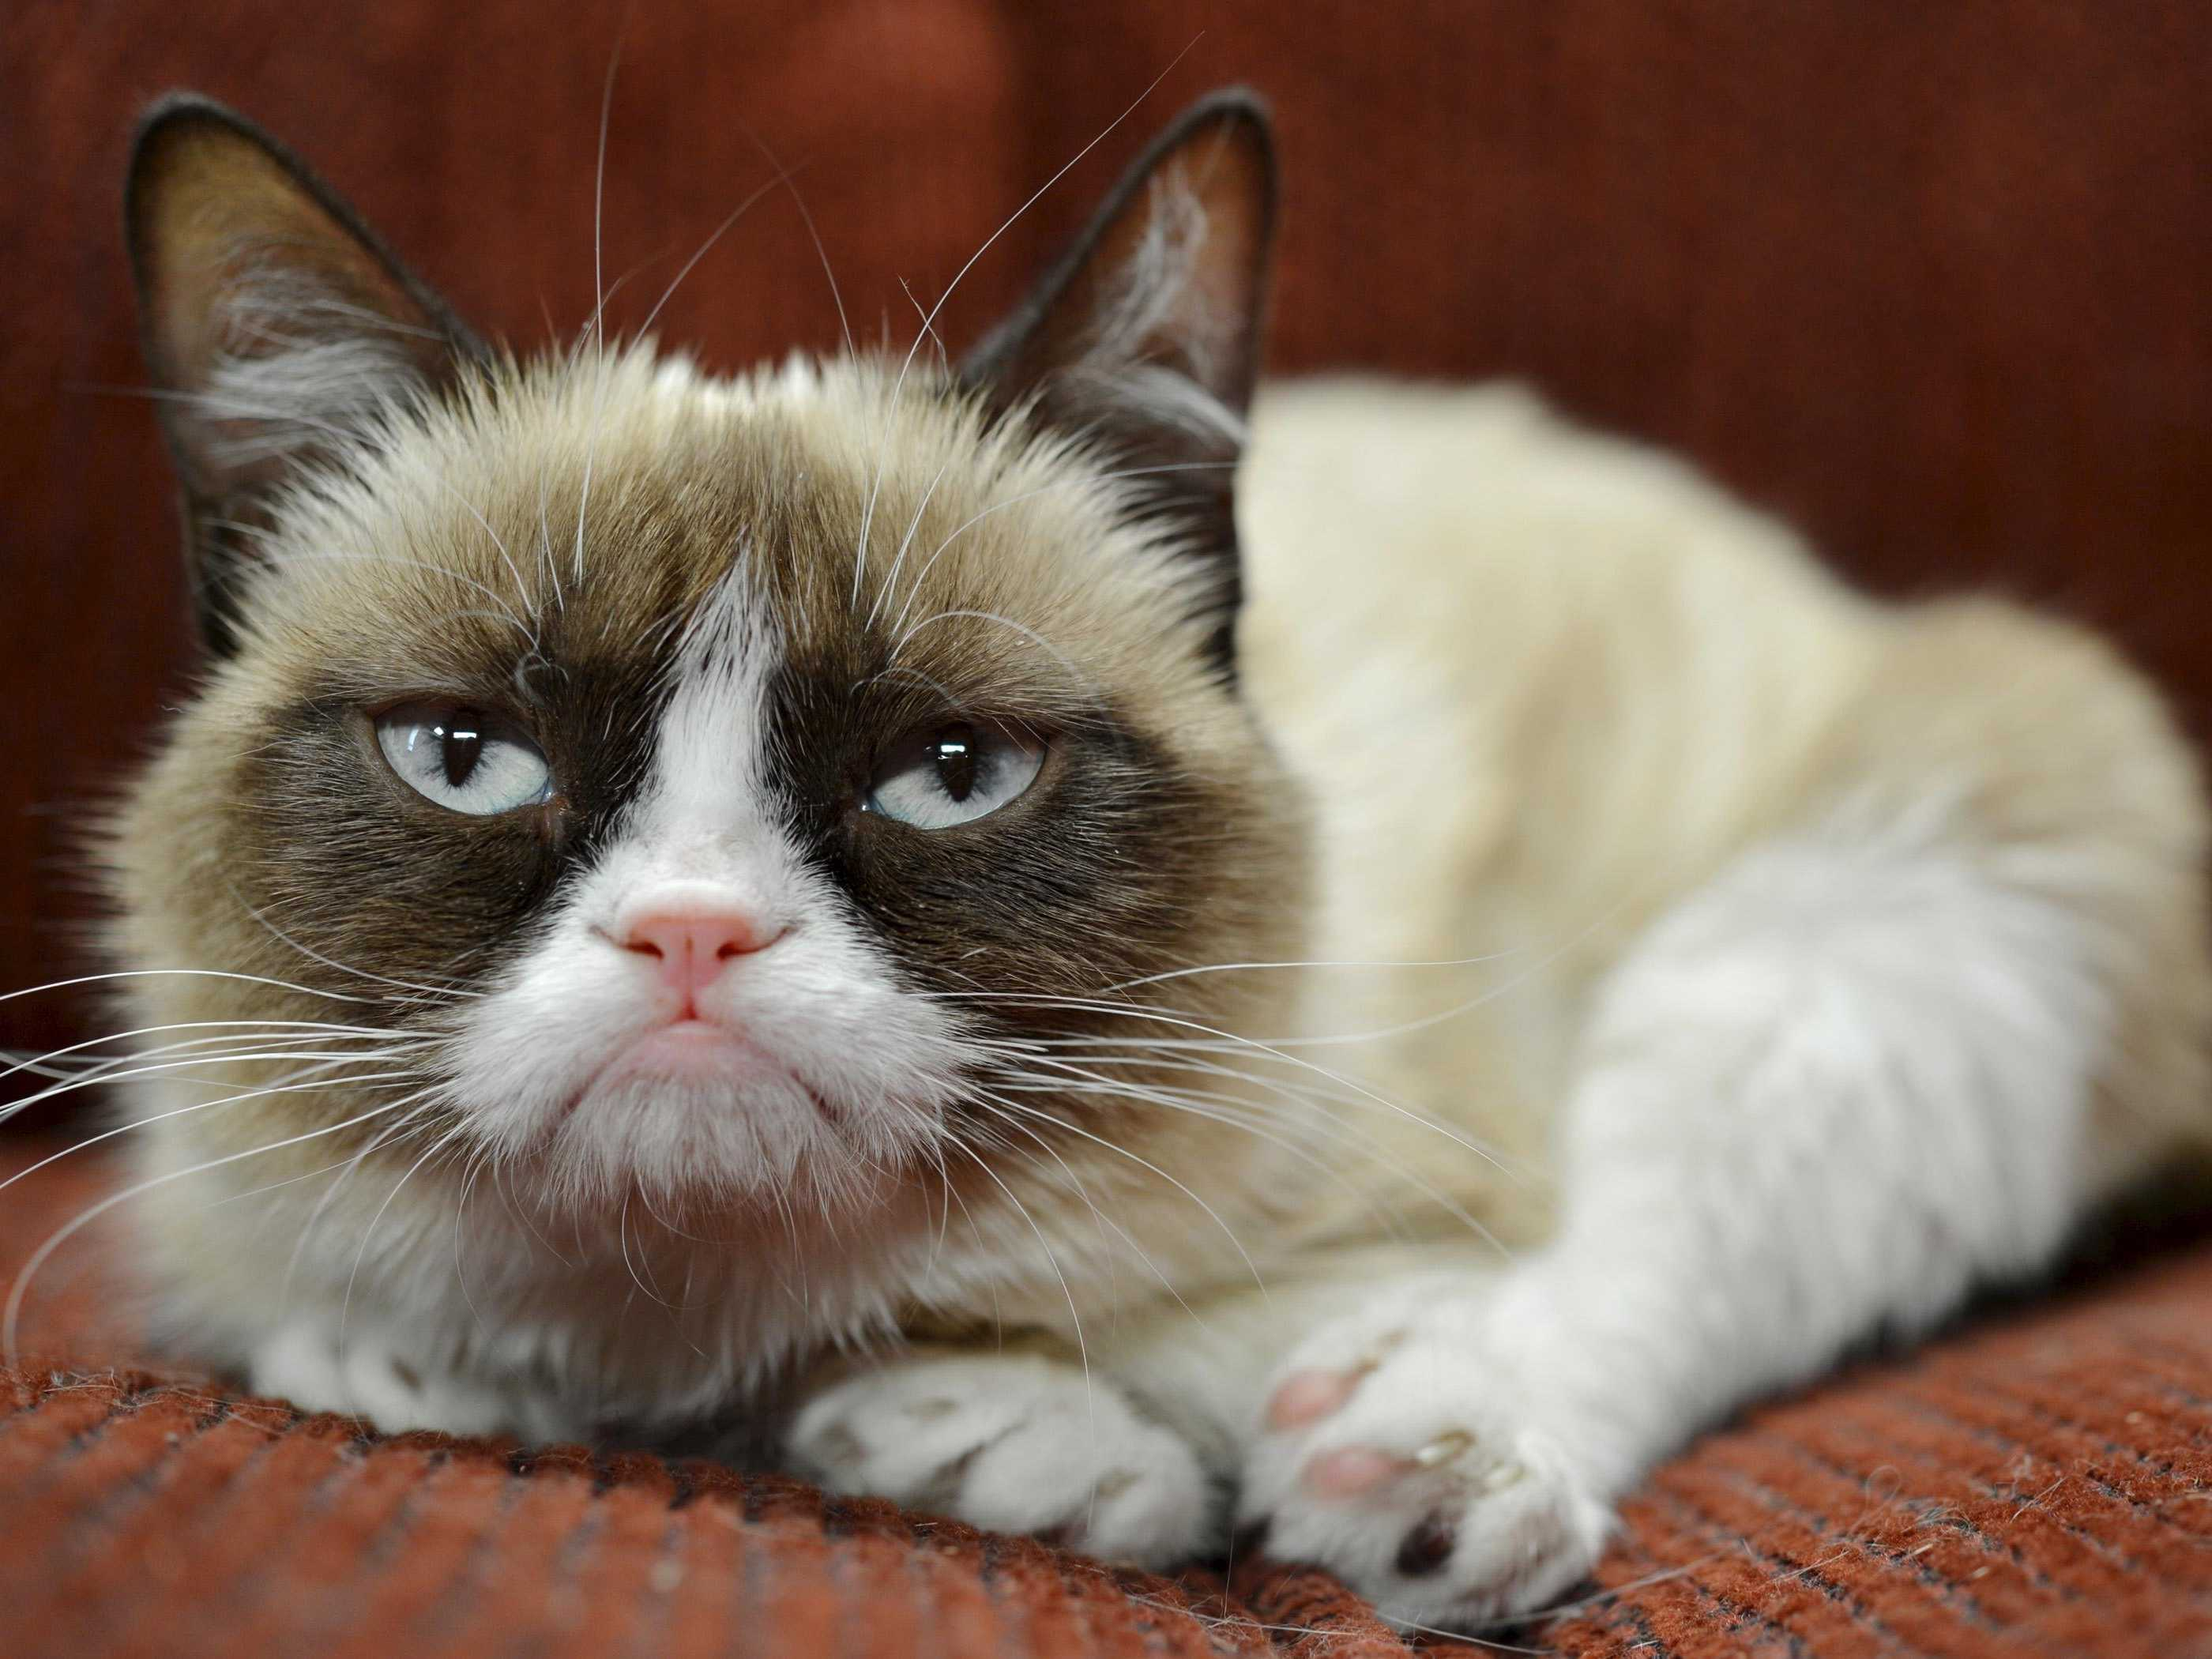 grumpy-cat-has-earned-her-owner-nearly-100-million-in-just-2-years